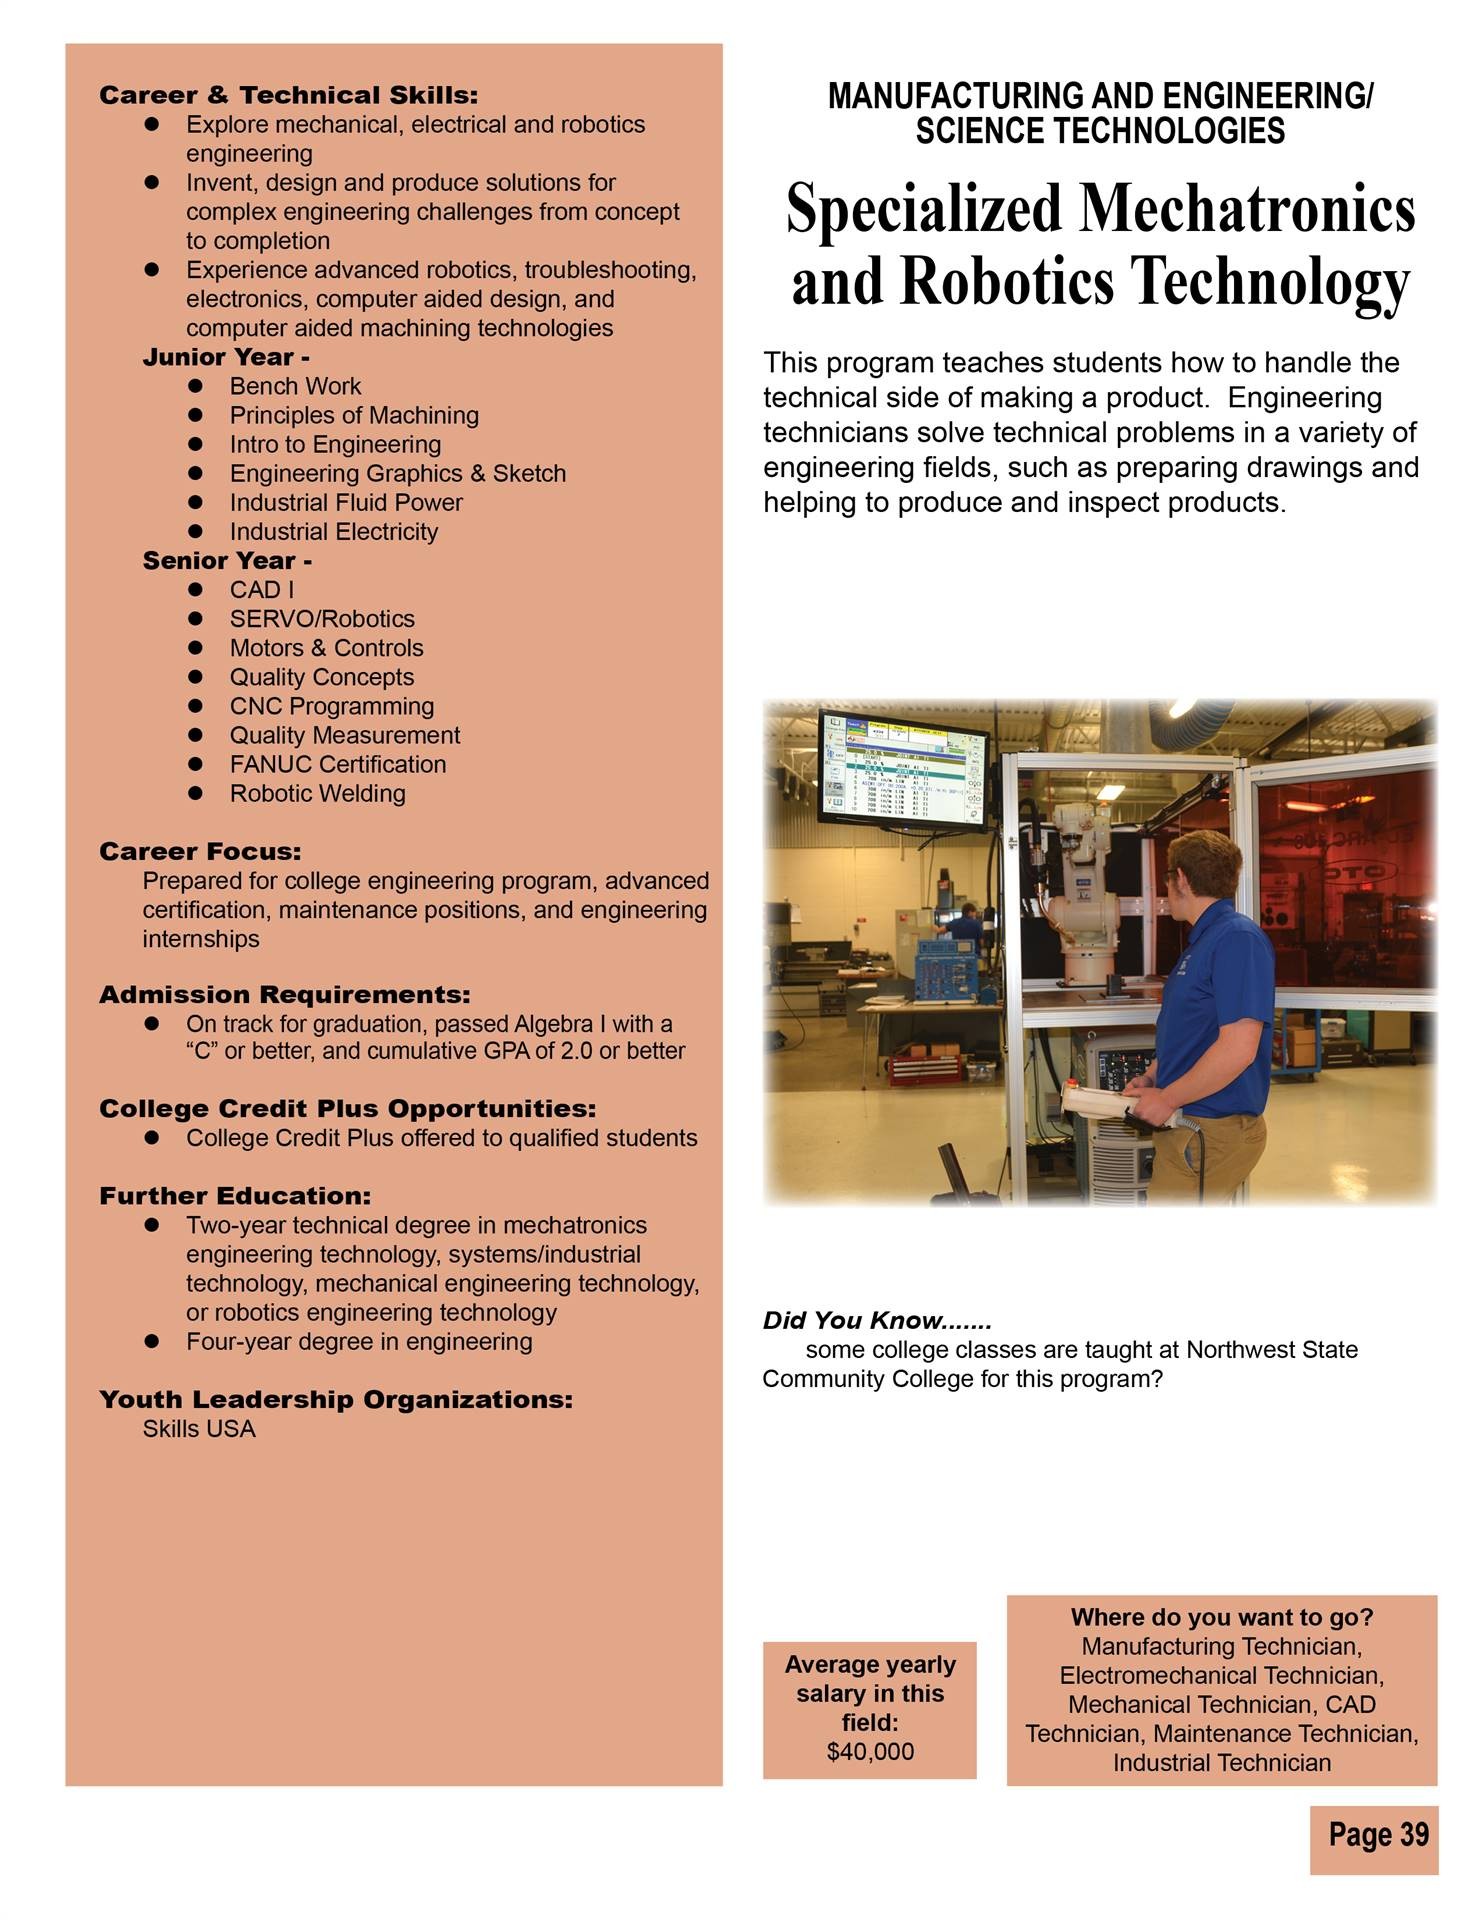 Specialized Mechatronics & Robotics Technology